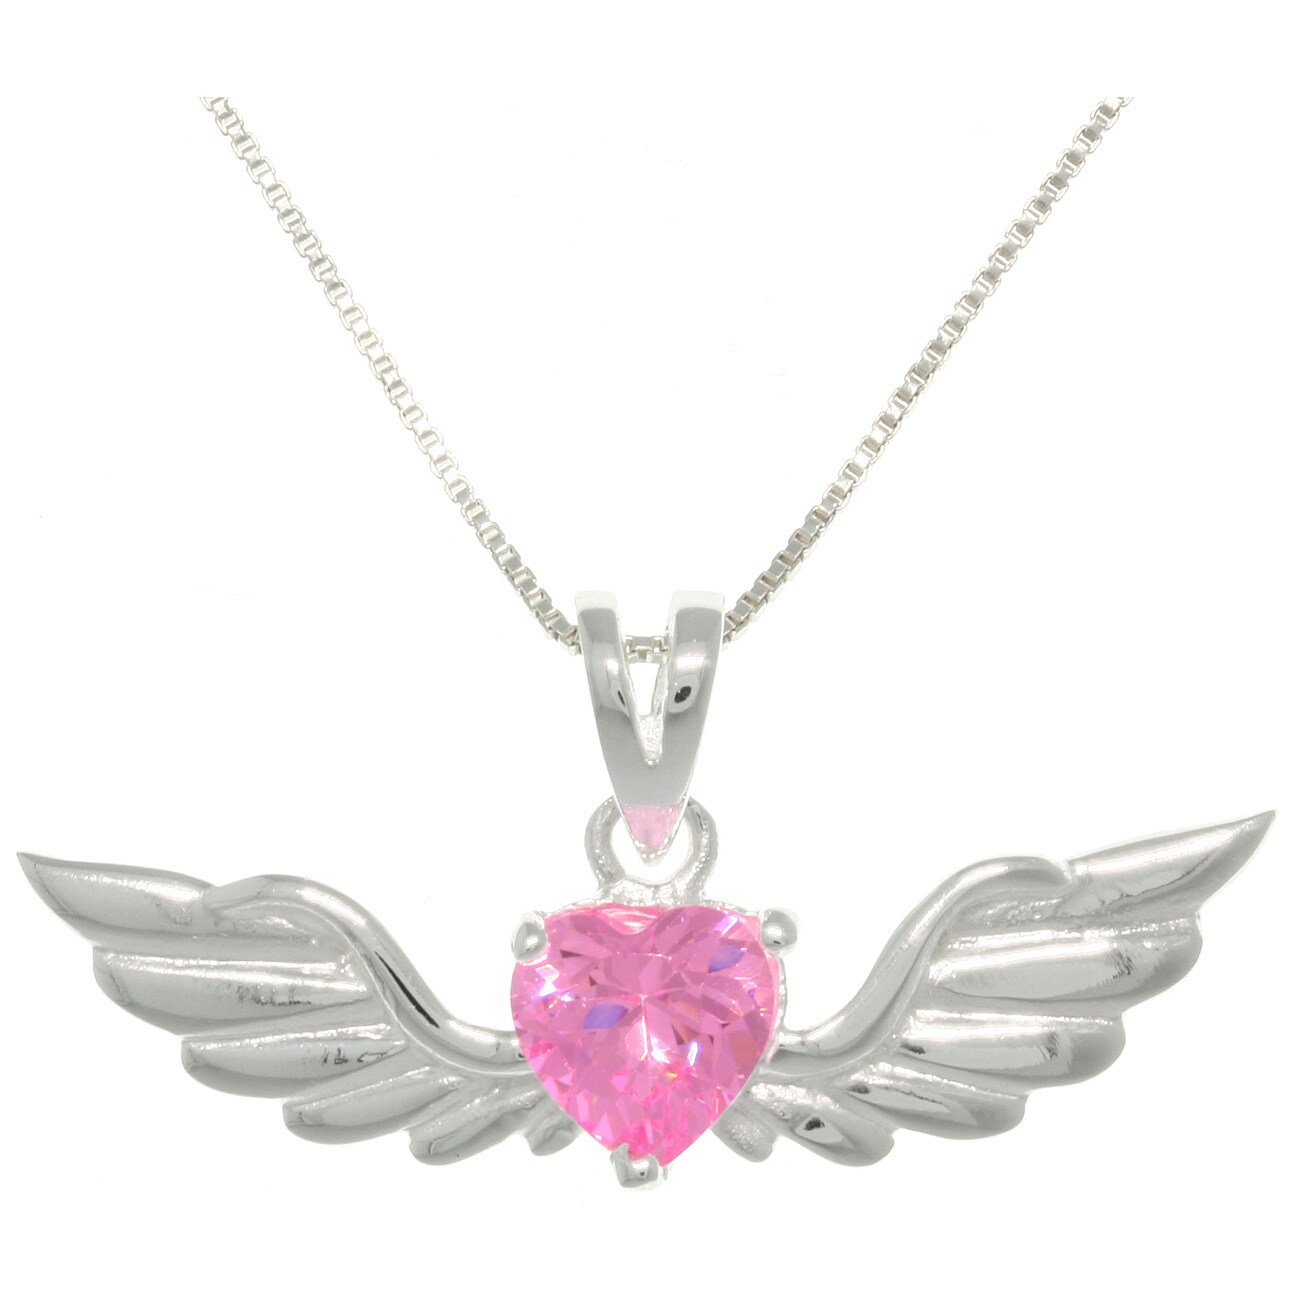 Jewelry Trends Sterling Silver Phoenix Angel Wings Heart Pendant with Pink CZ on Chain Necklace Valentines Gift